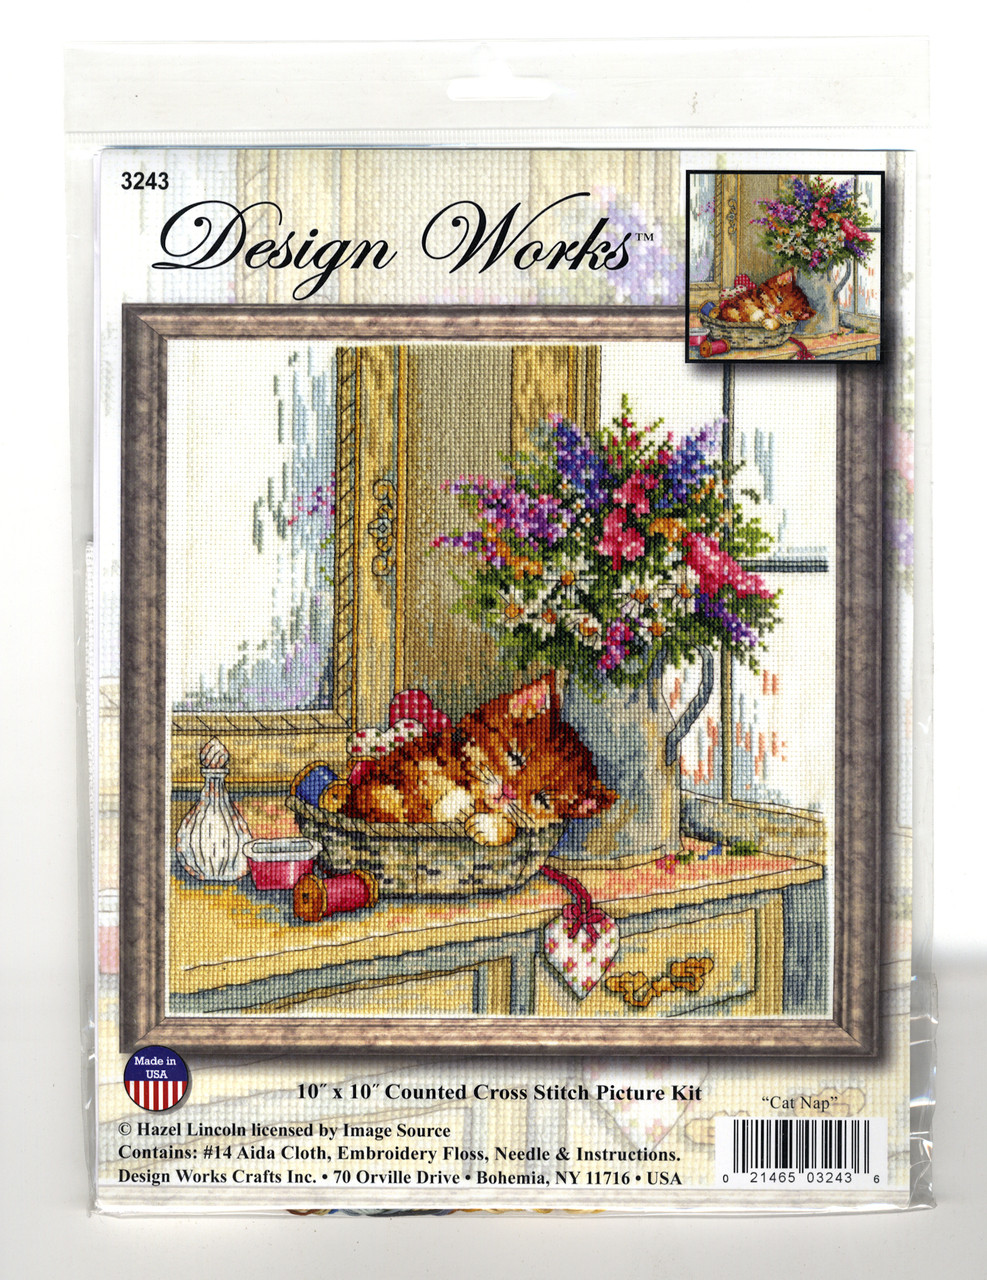 Design Works - Cat Nap